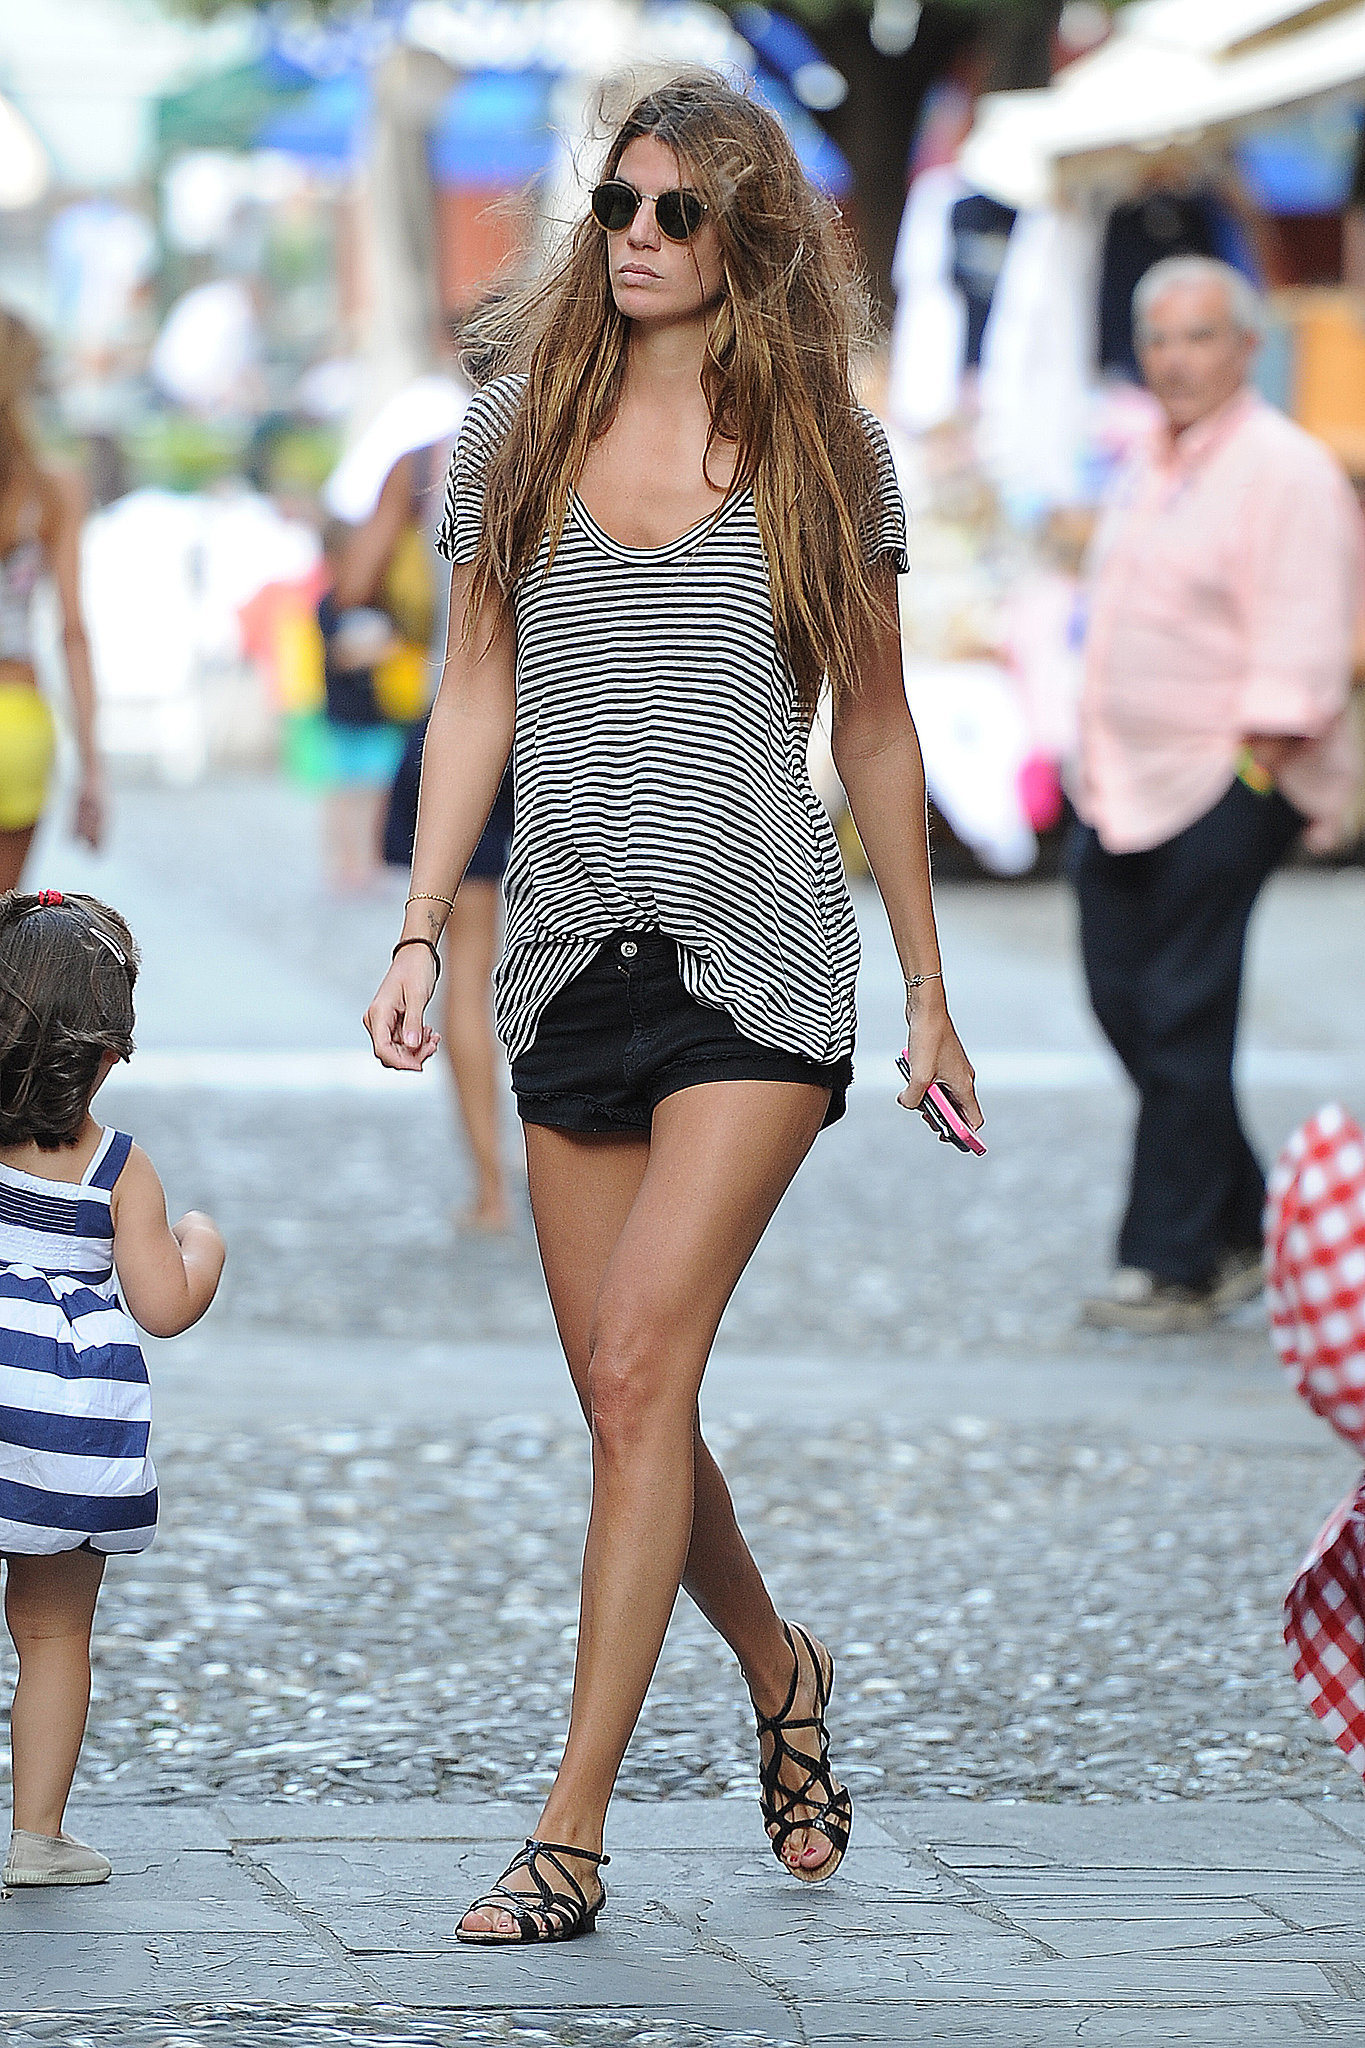 Bianca Brandolini D'Adda was the picture of Summer in cutoffs, strappy (walkable) flats and a striped tee while hanging in Italy.